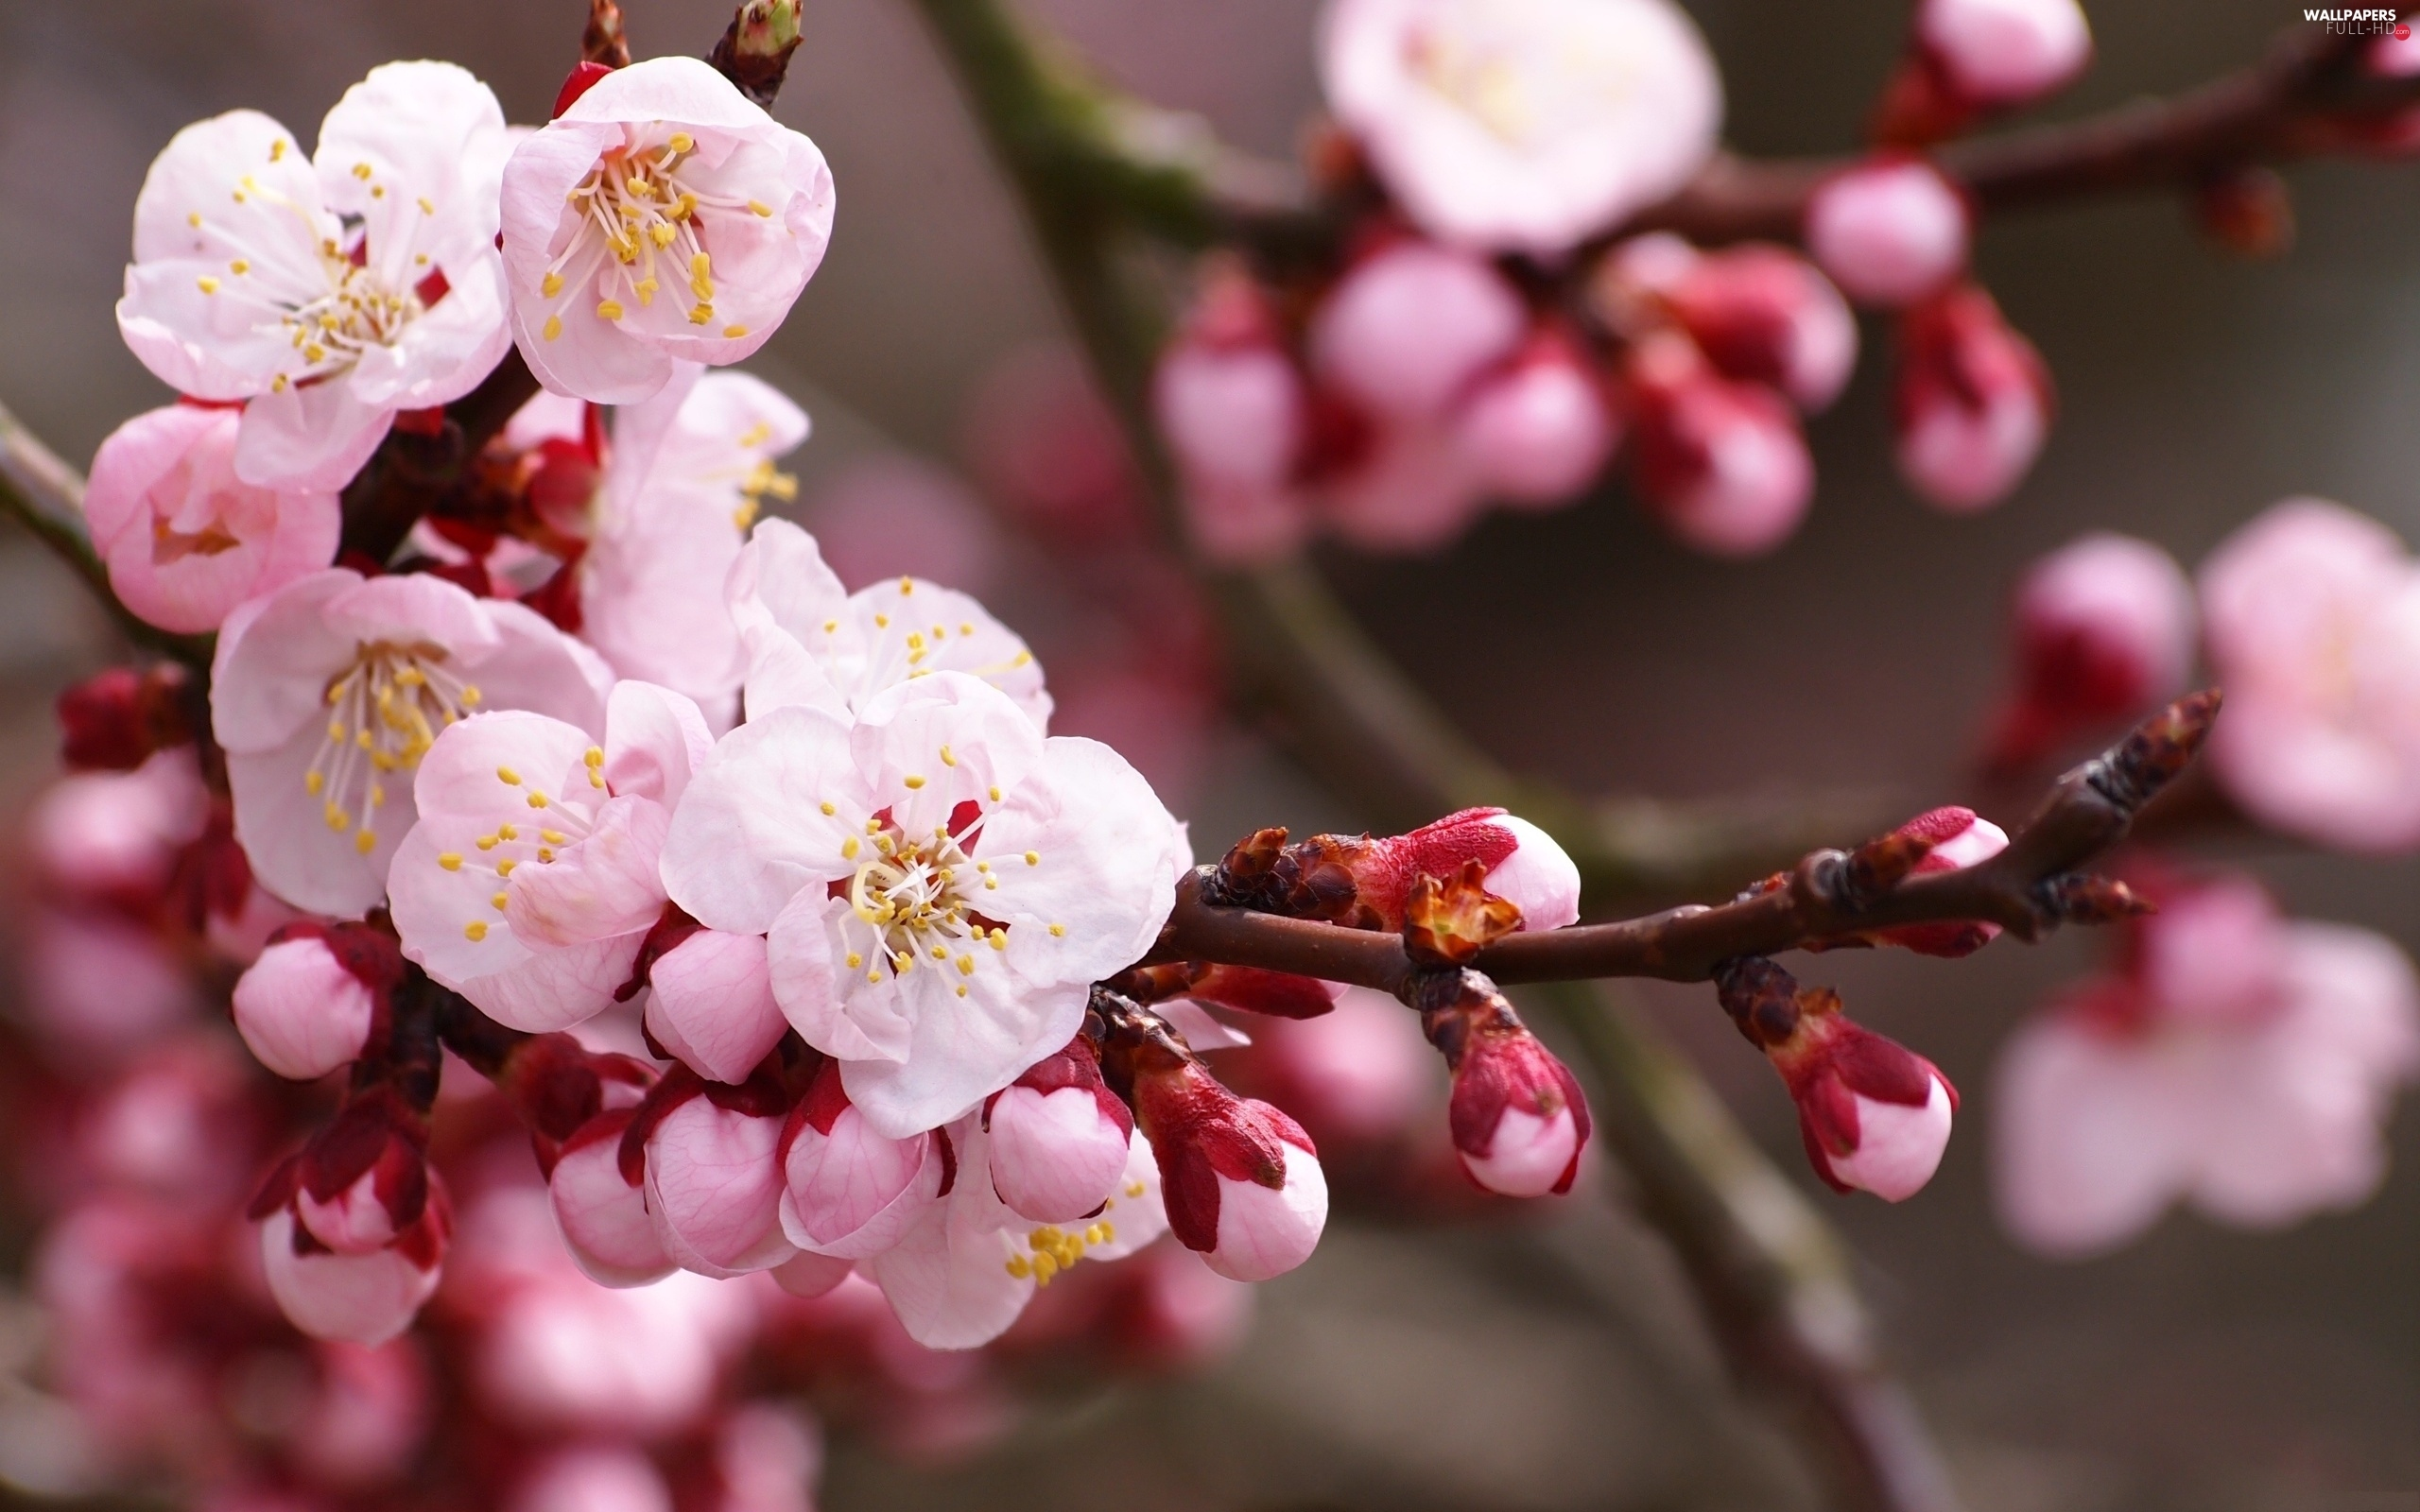 fruit, trees, Pink, Flowers